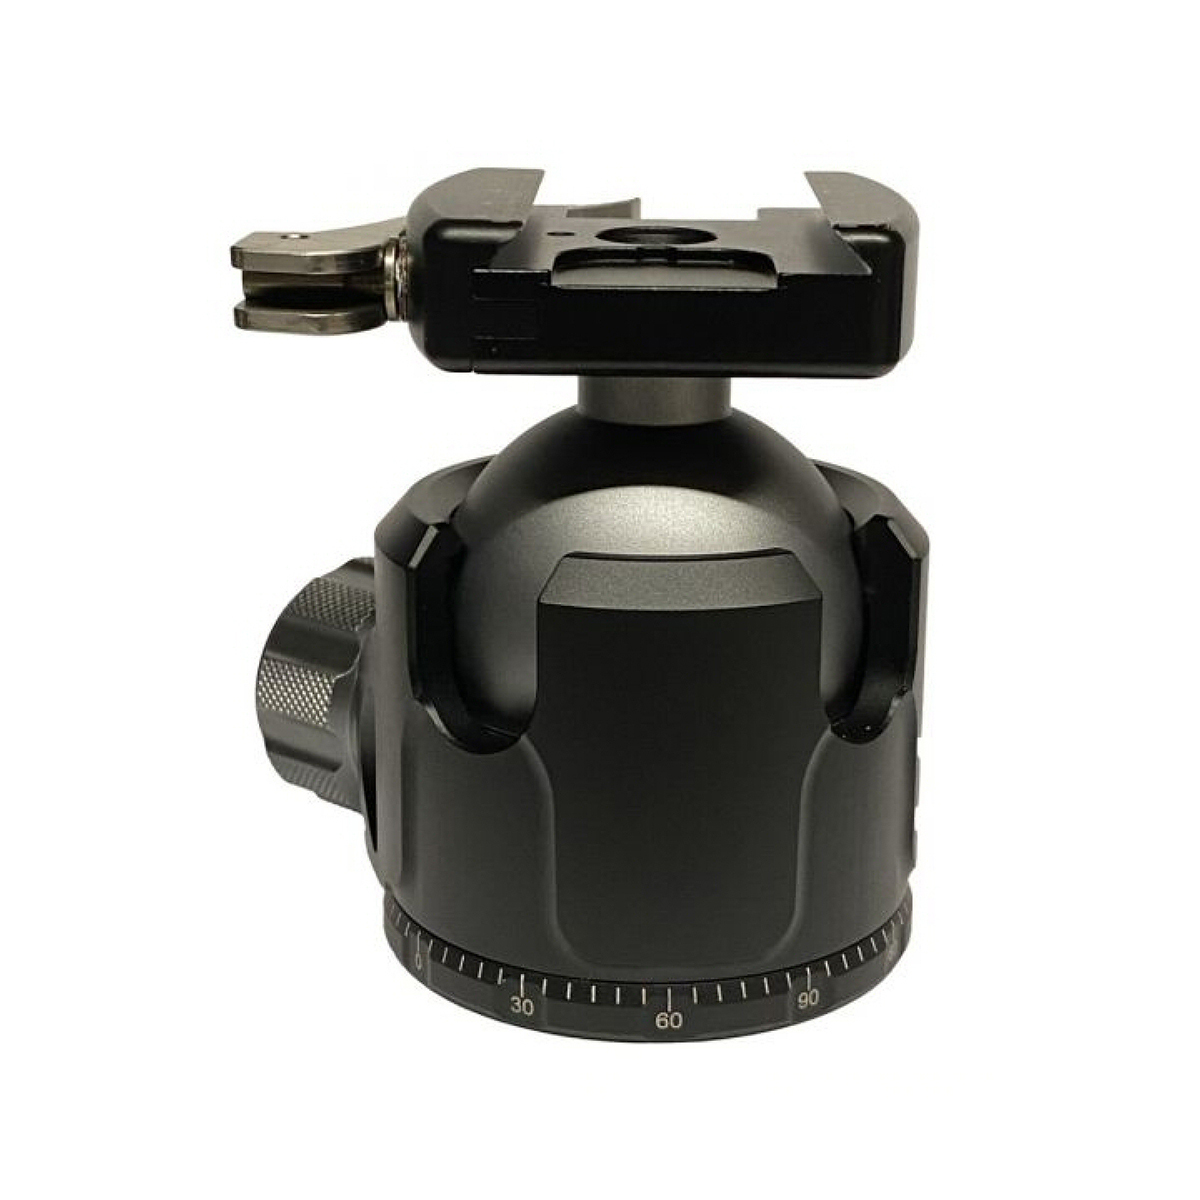 Two Vets 55mm Ballhead with QR Plate